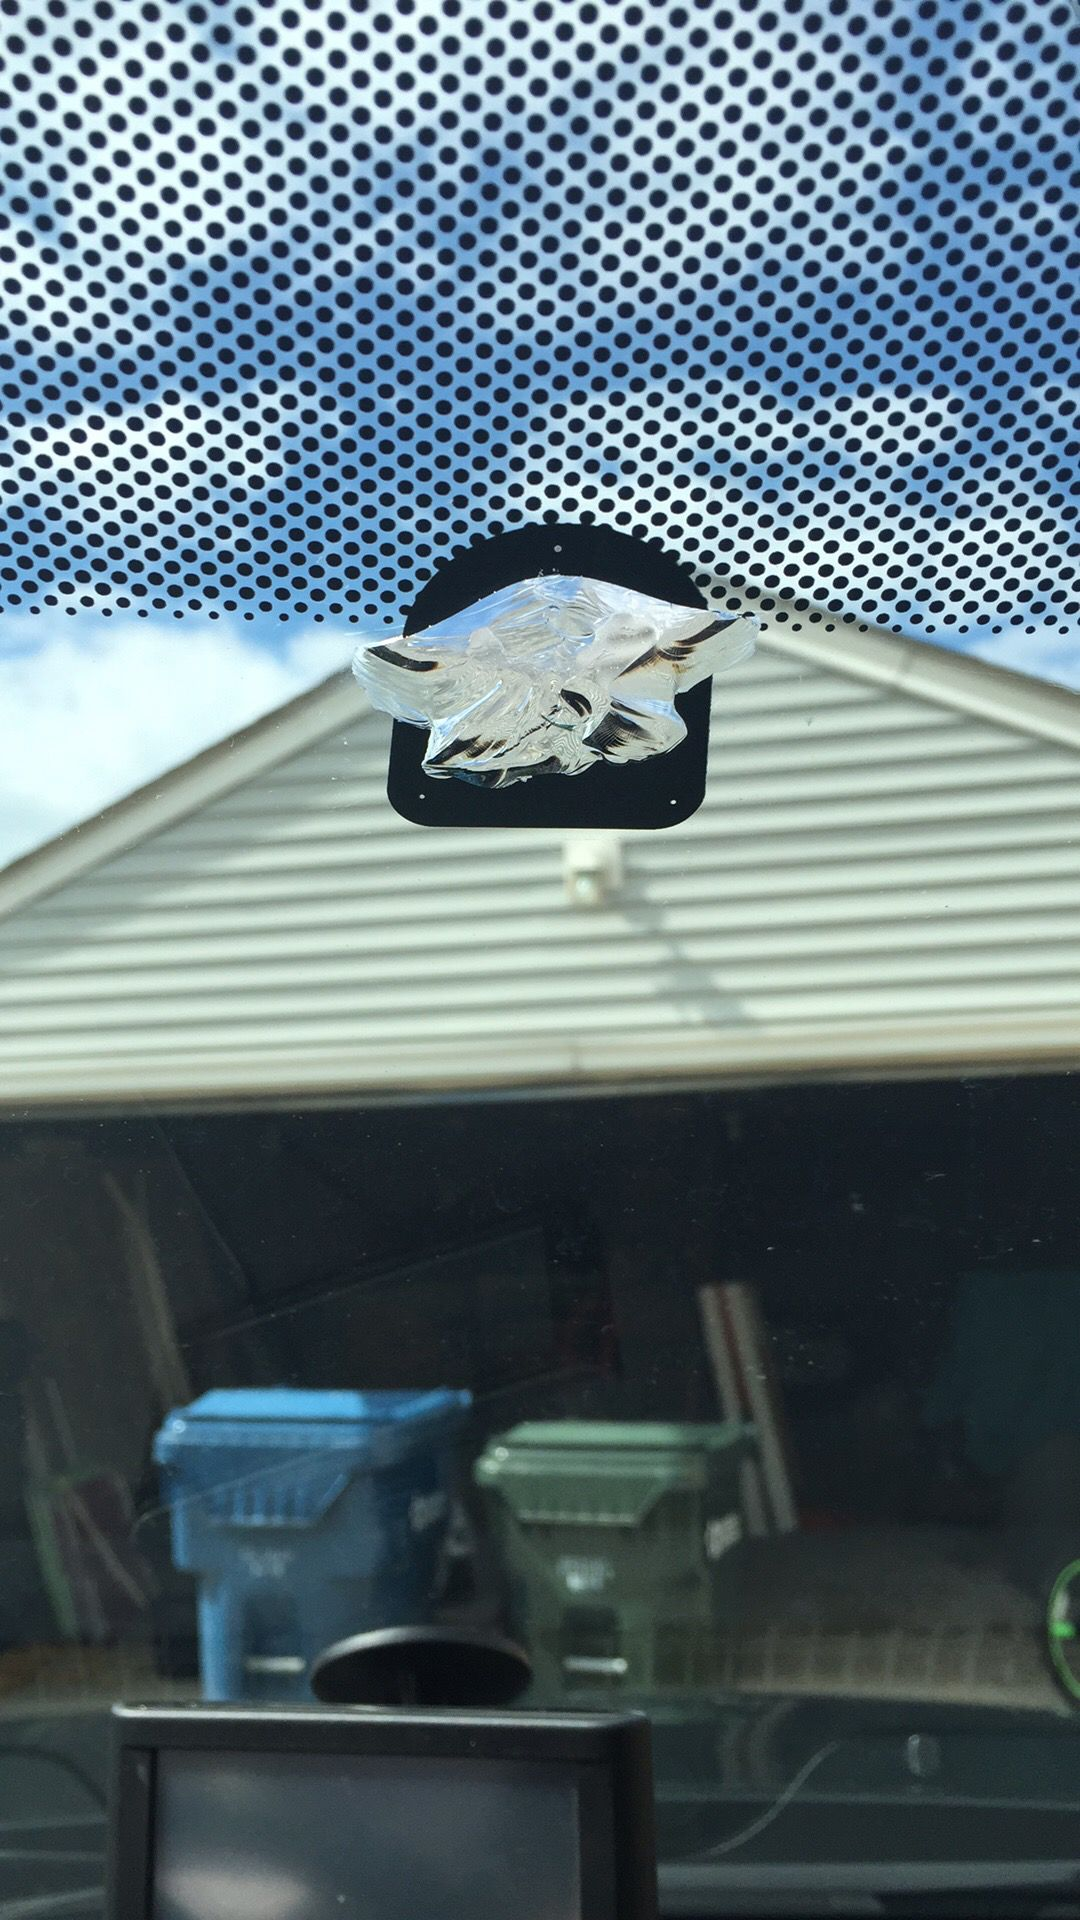 2017 Dodge Durango Windshield